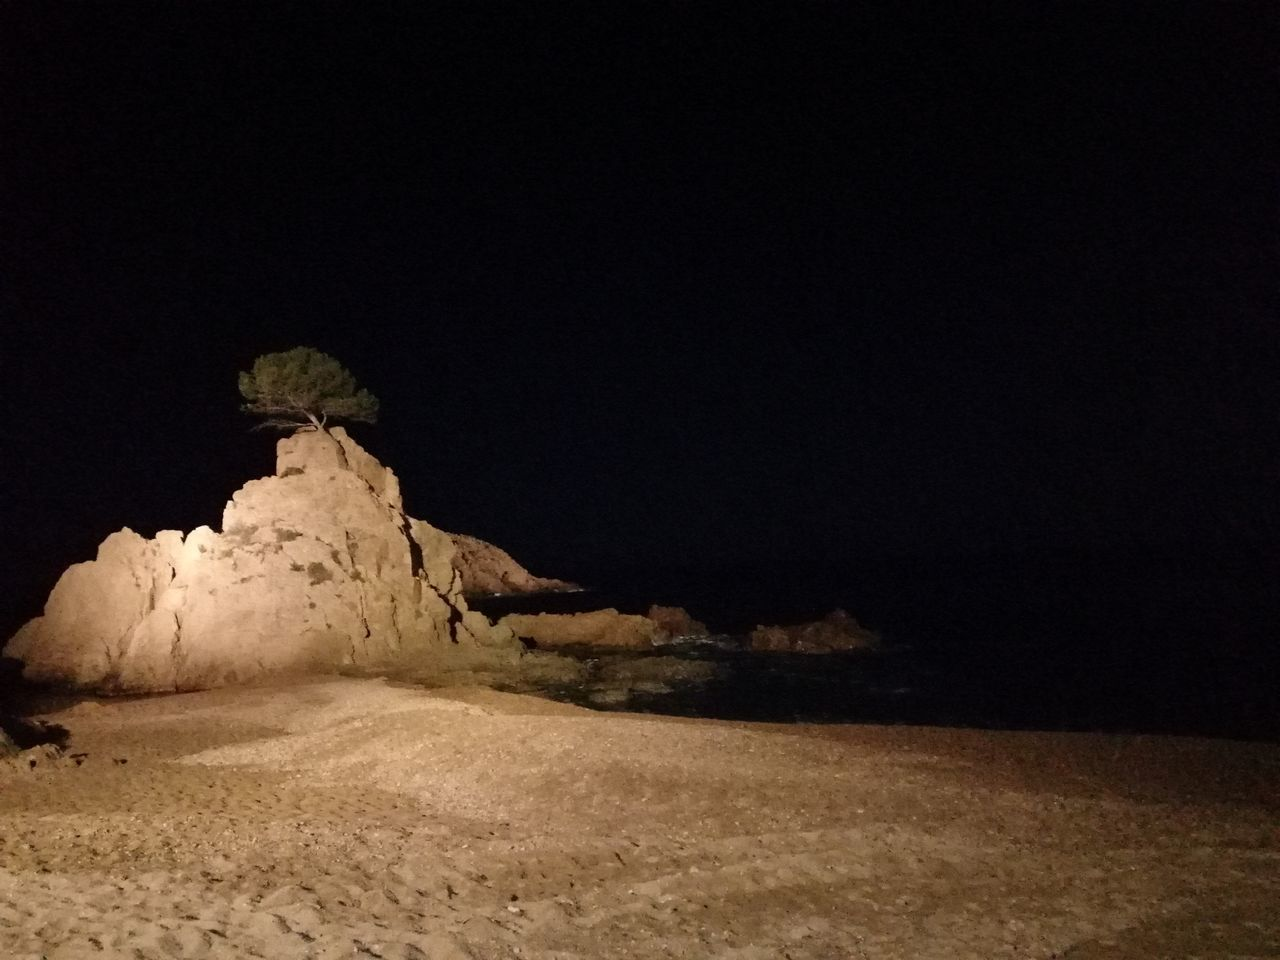 night, copy space, land, sky, nature, no people, beauty in nature, landscape, scenics - nature, rock, desert, tranquility, clear sky, rock - object, tranquil scene, solid, environment, rock formation, outdoors, dark, arid climate, climate